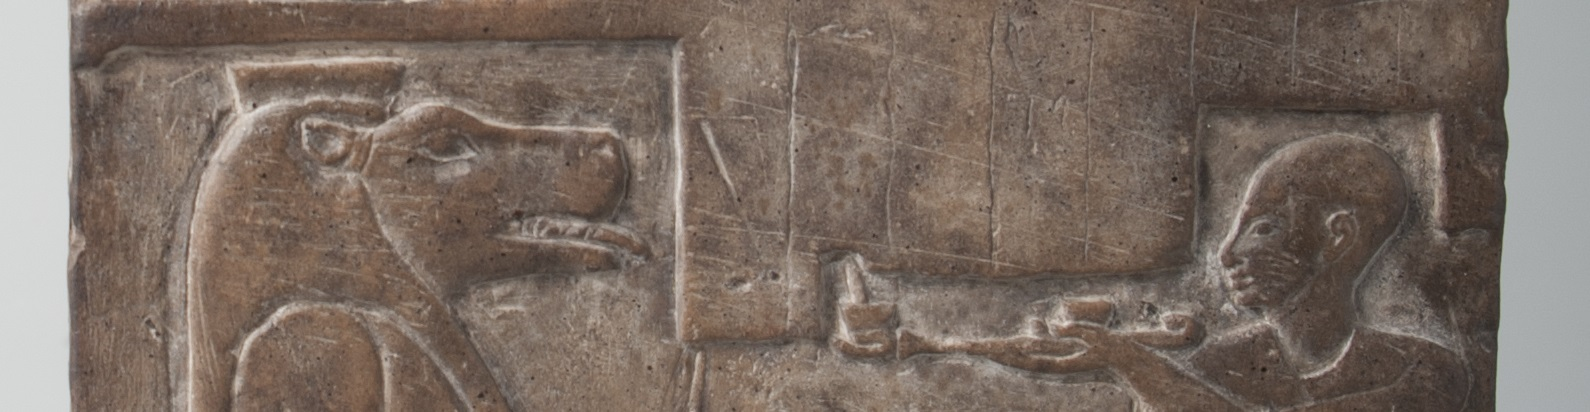 This image of the front of the stele shows a blank space incised with vertical lines.